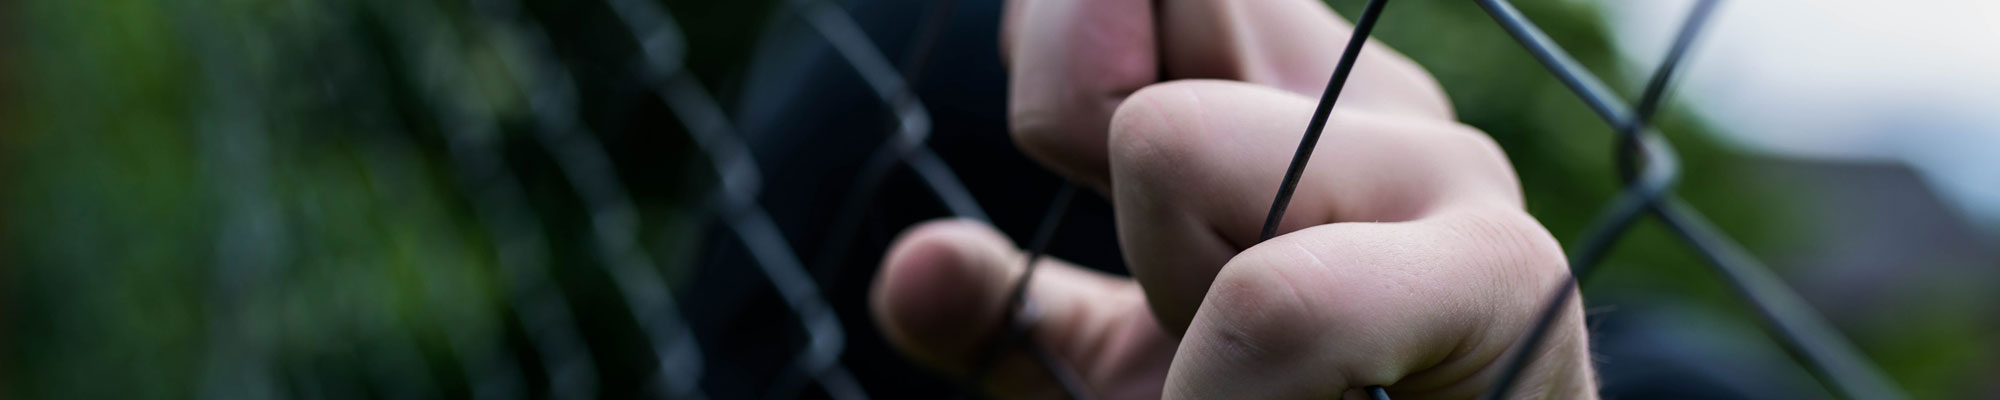 Person holding onto prison fence